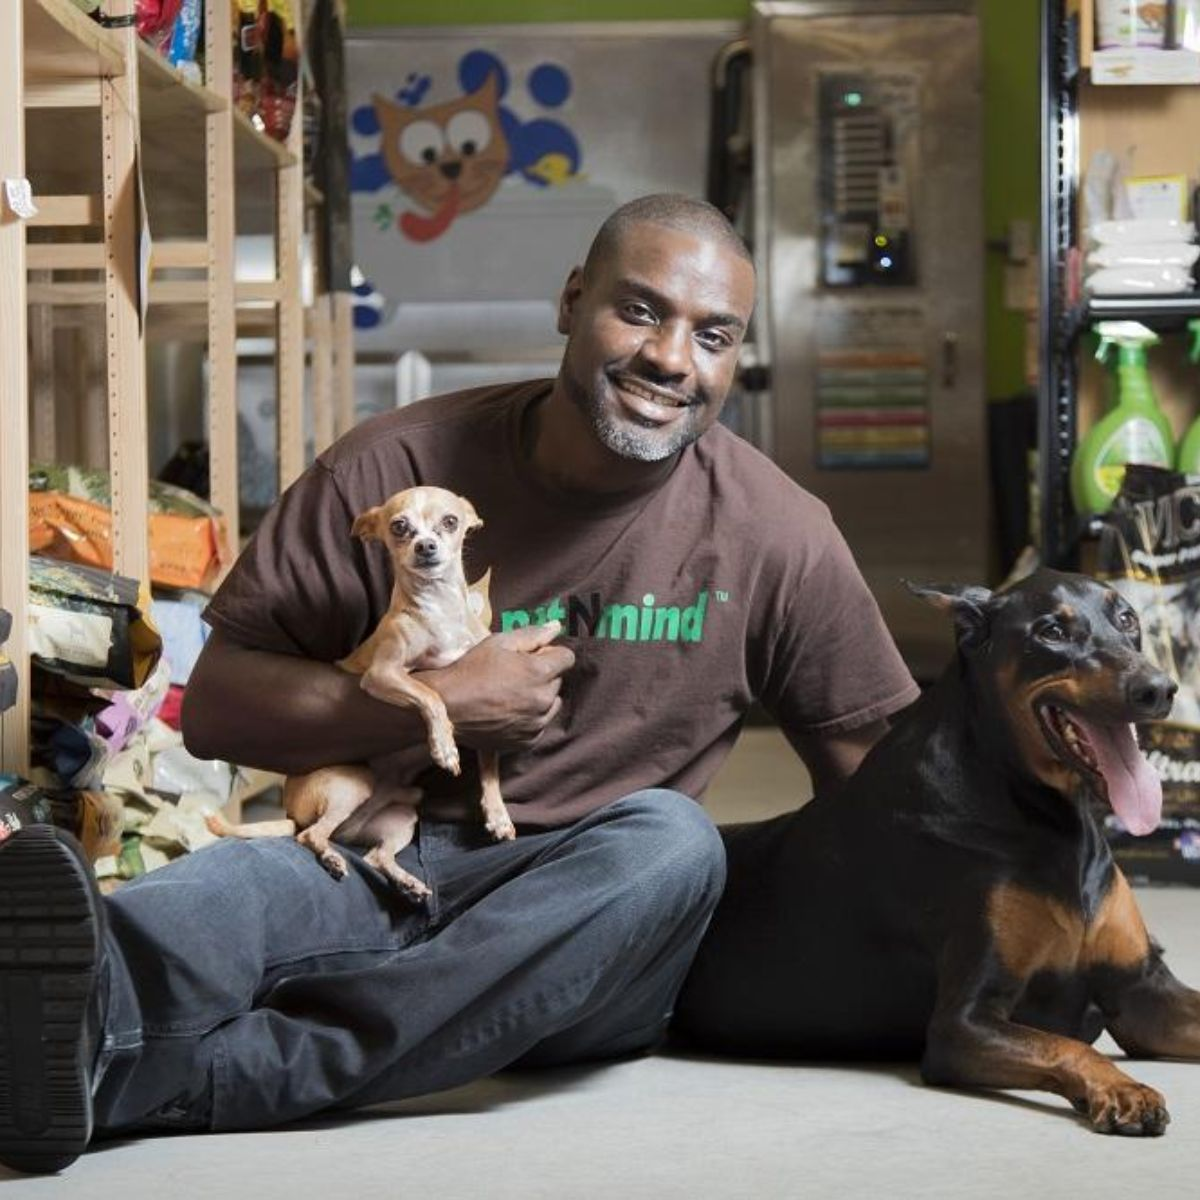 adrian archie sits with his two dogs inside petnmind store